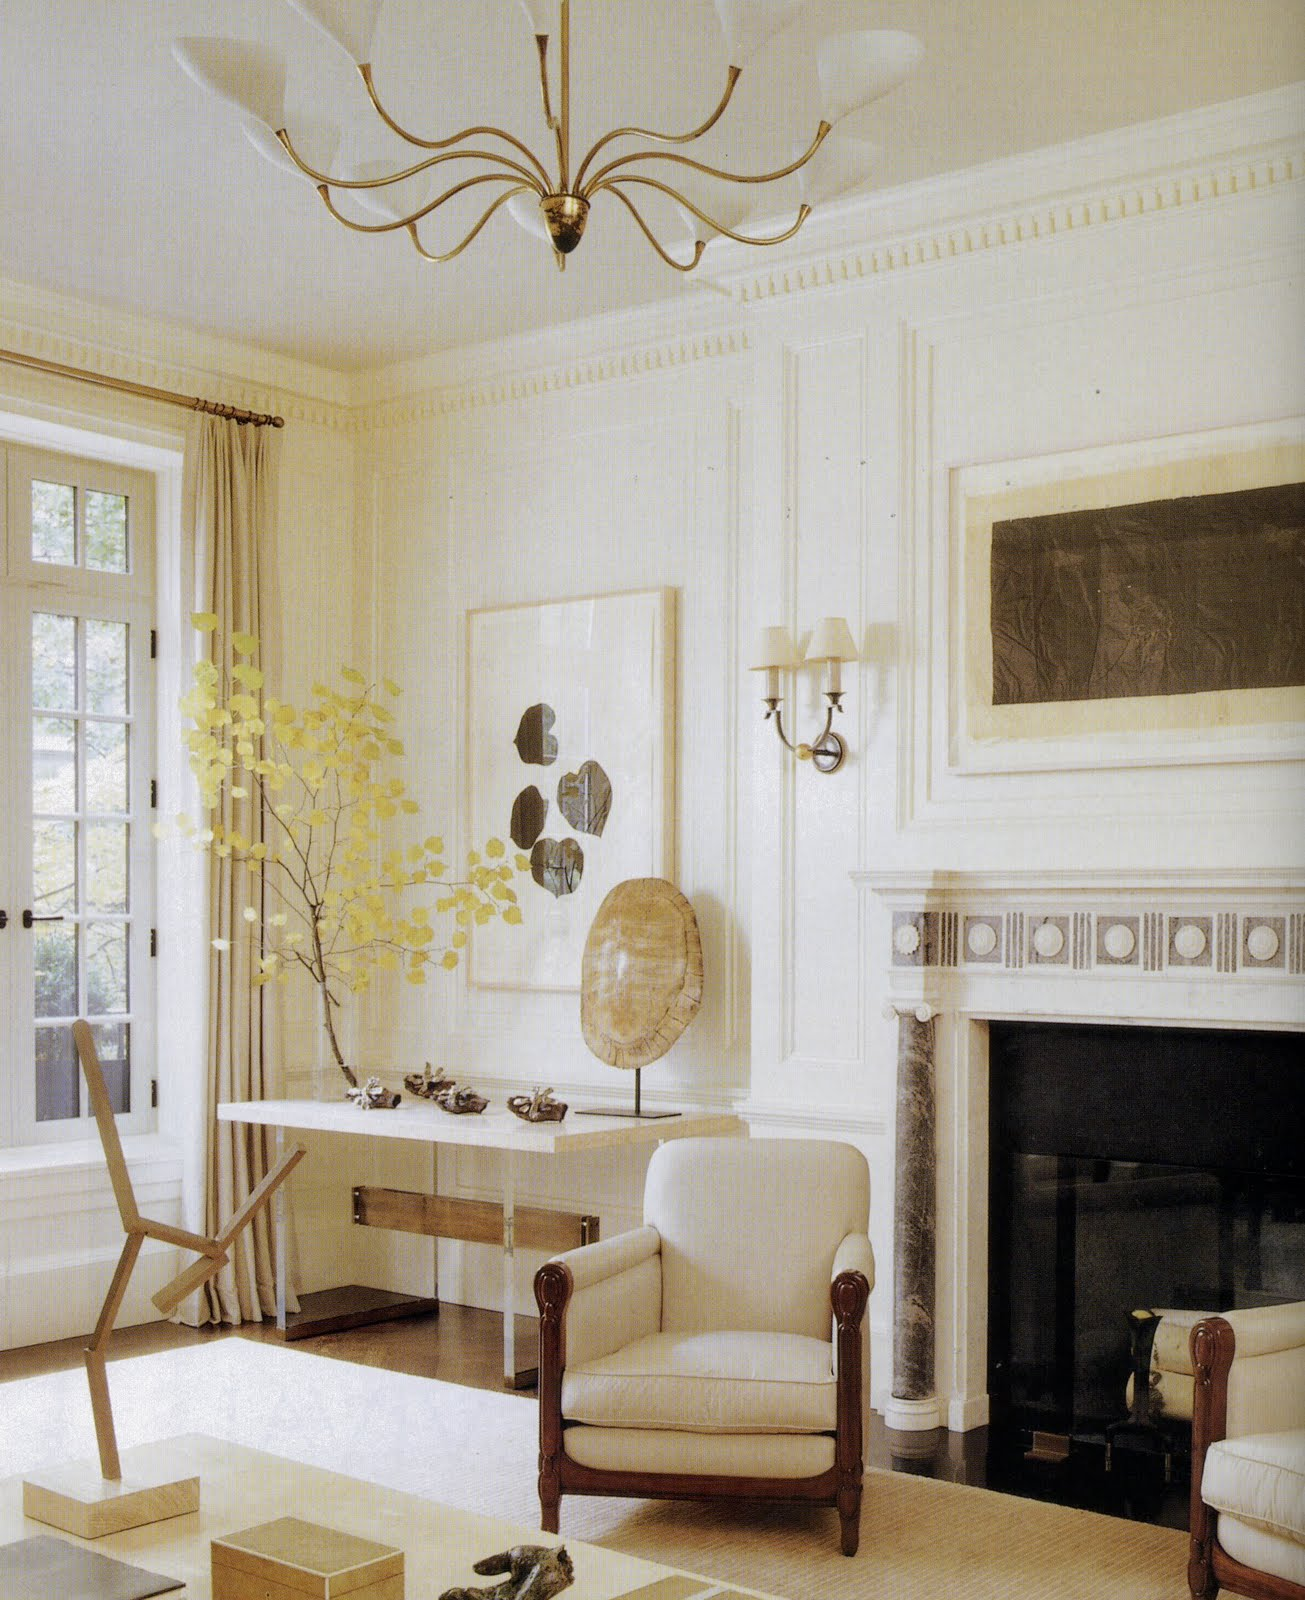 Elle Design: AESTHETICALLY THINKING: THE PANELED ROOM